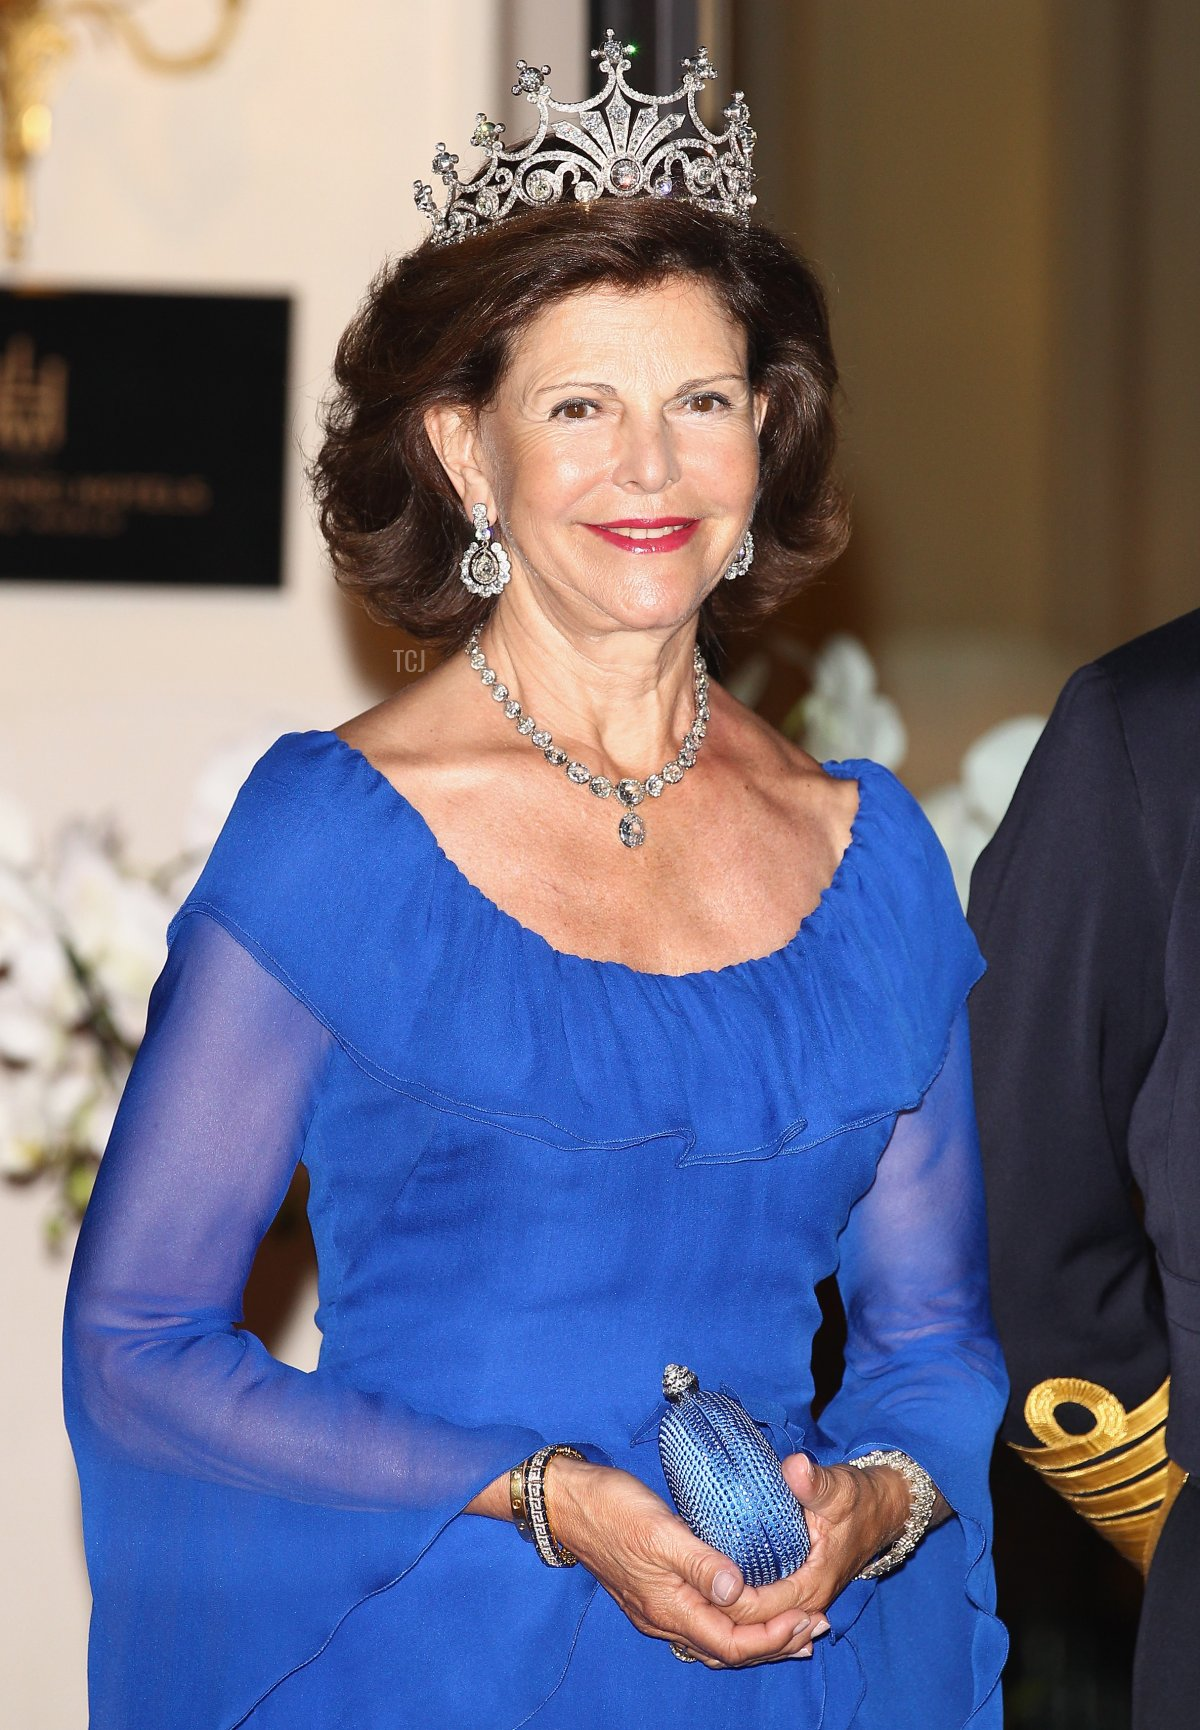 Queen Silvia of Sweden leaves the Hotel Hermitage to attend a dinner at Opera terraces after the religious wedding ceremony of Prince Albert II of Monaco and Princess Charlene of Monaco on July 2, 2011 in Monaco